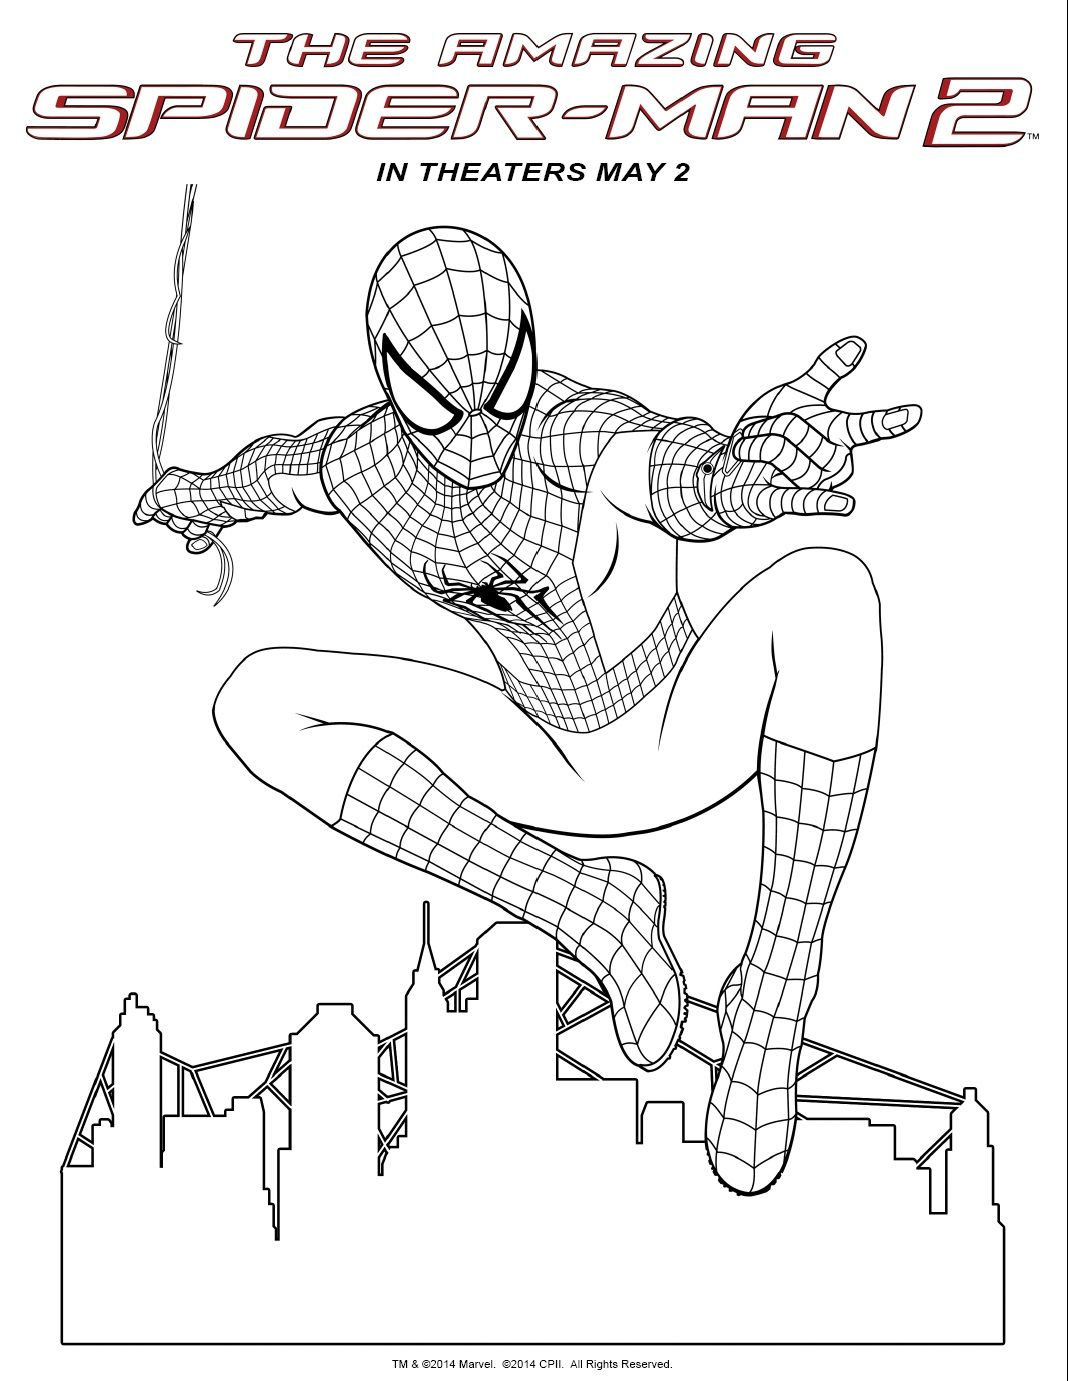 Spiderman Coloring Pages To Print Coloring Pages Spiderman Coloring Spider Coloring Page Superhero Coloring Pages